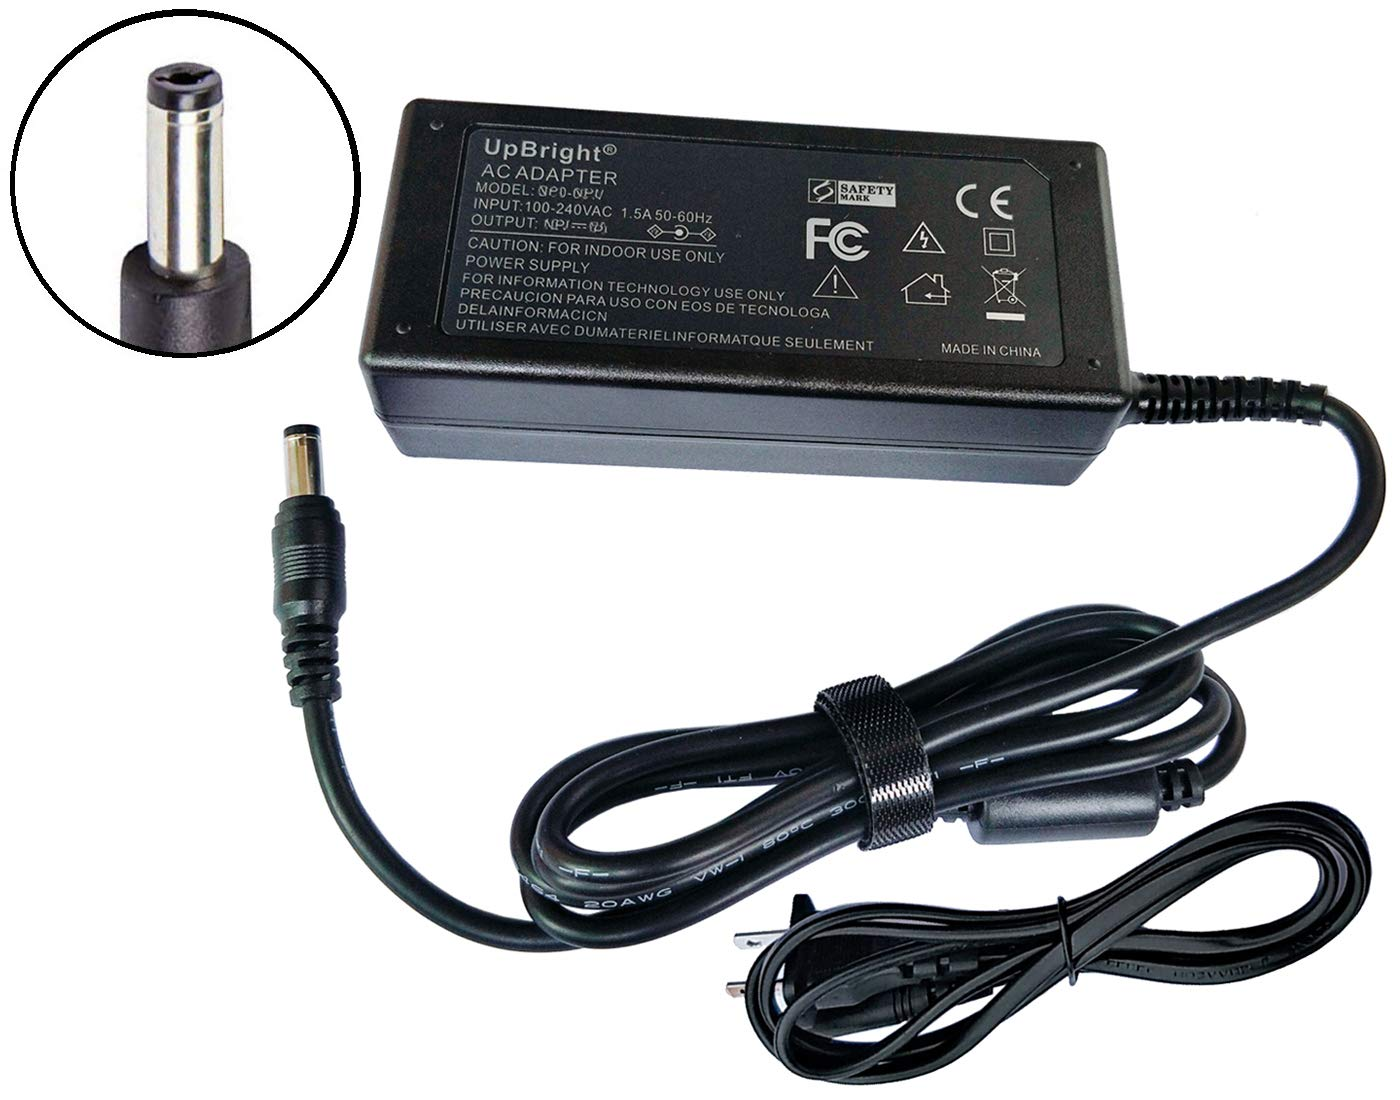 UpBright 24V AC/DC Adapter Replacement for Epson Workforce WF-100 GT-S80 GTS-50 GT 1500 2500 GT-F520 GT-F570 J143A GT-550 DS-760 DS-860 Perfection V550 1660 3490 Scanner A221B A441H A471H A472E PSU